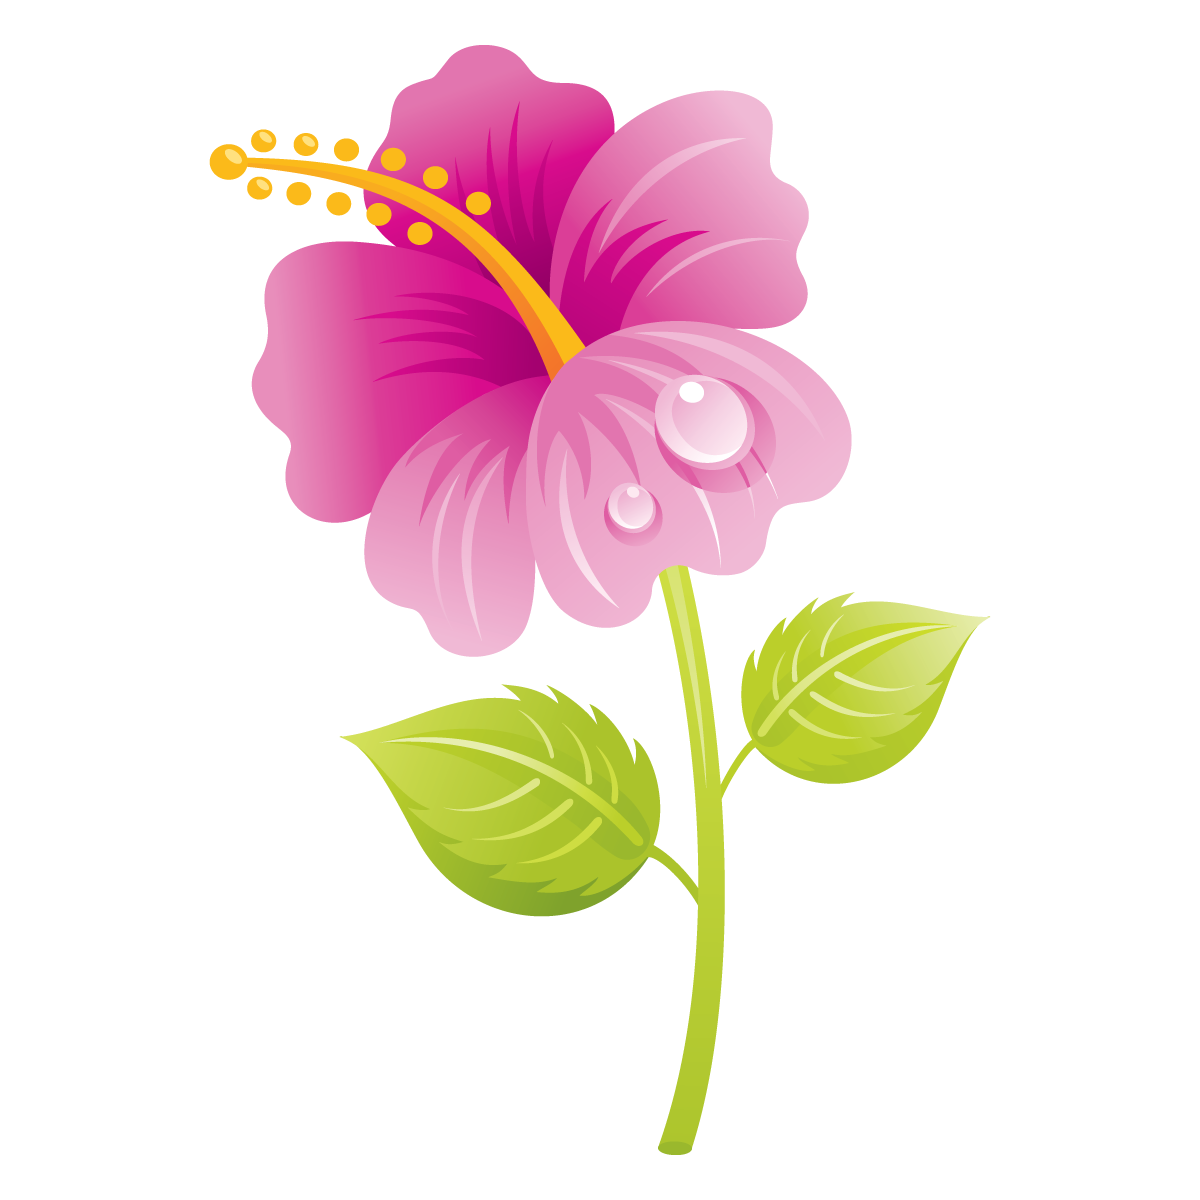 flowers clipart Free Large Images Flower art